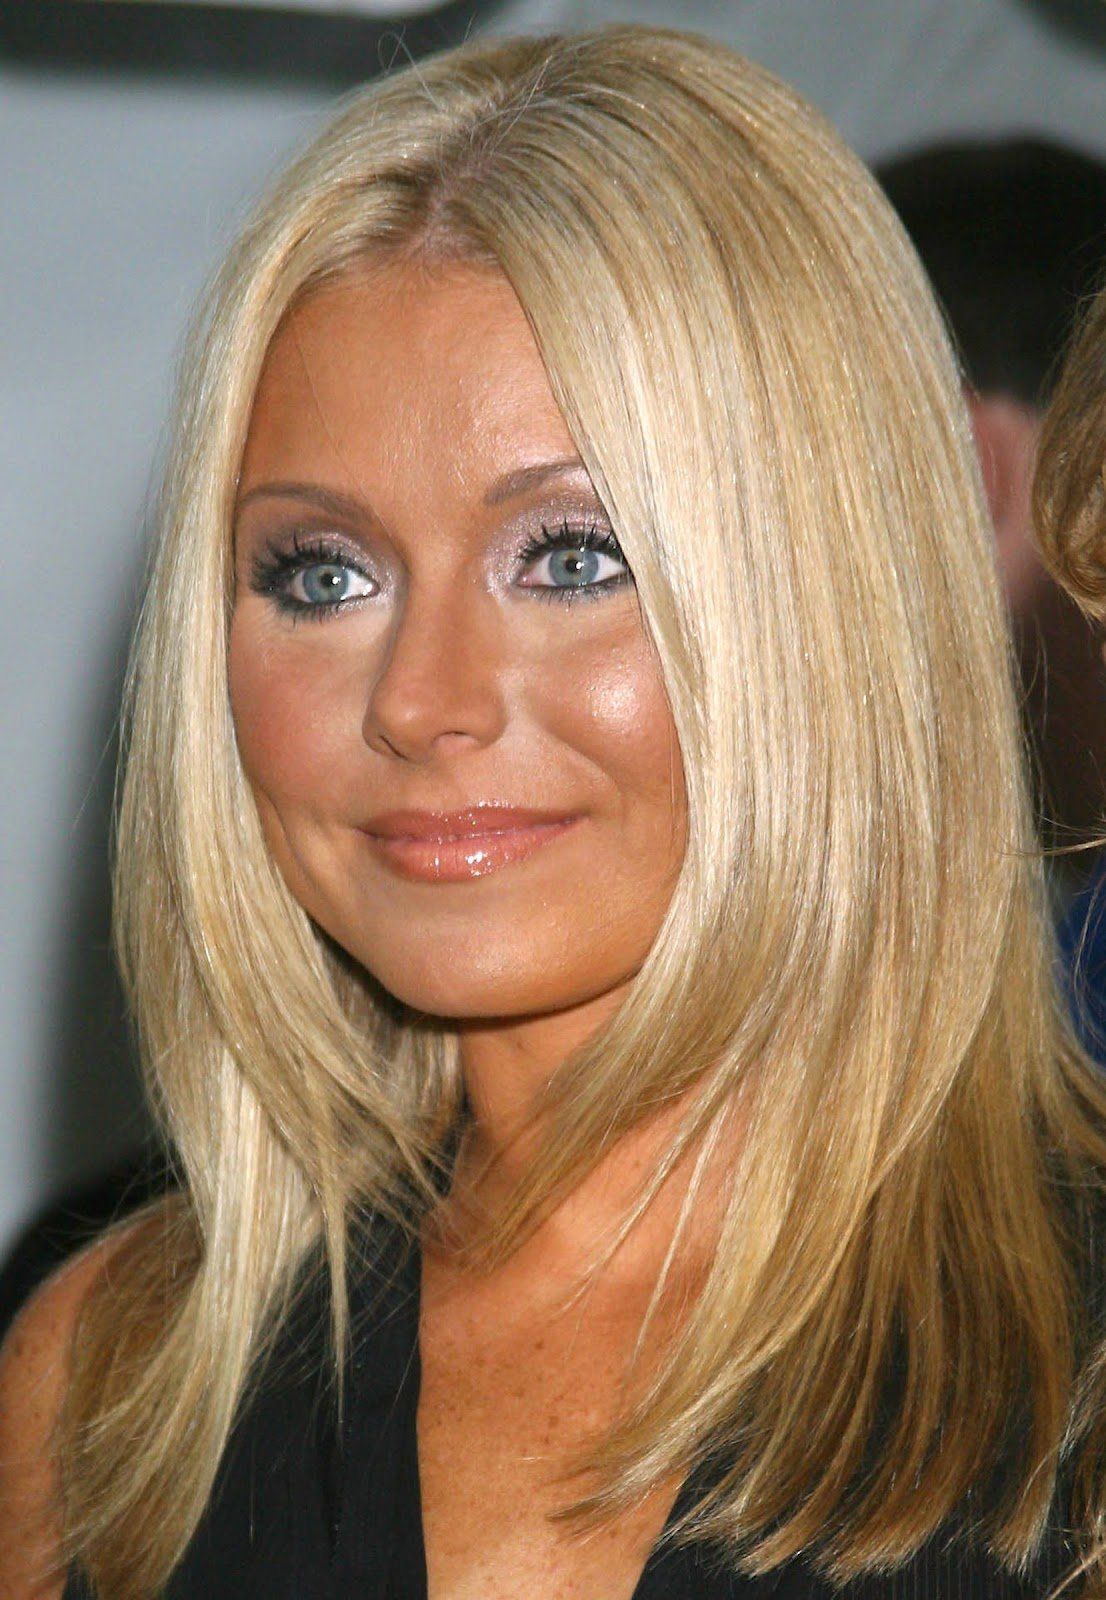 Free Damon Cool Picture Kelly Ripa Cuts Her Hair Beauty Wallpaper